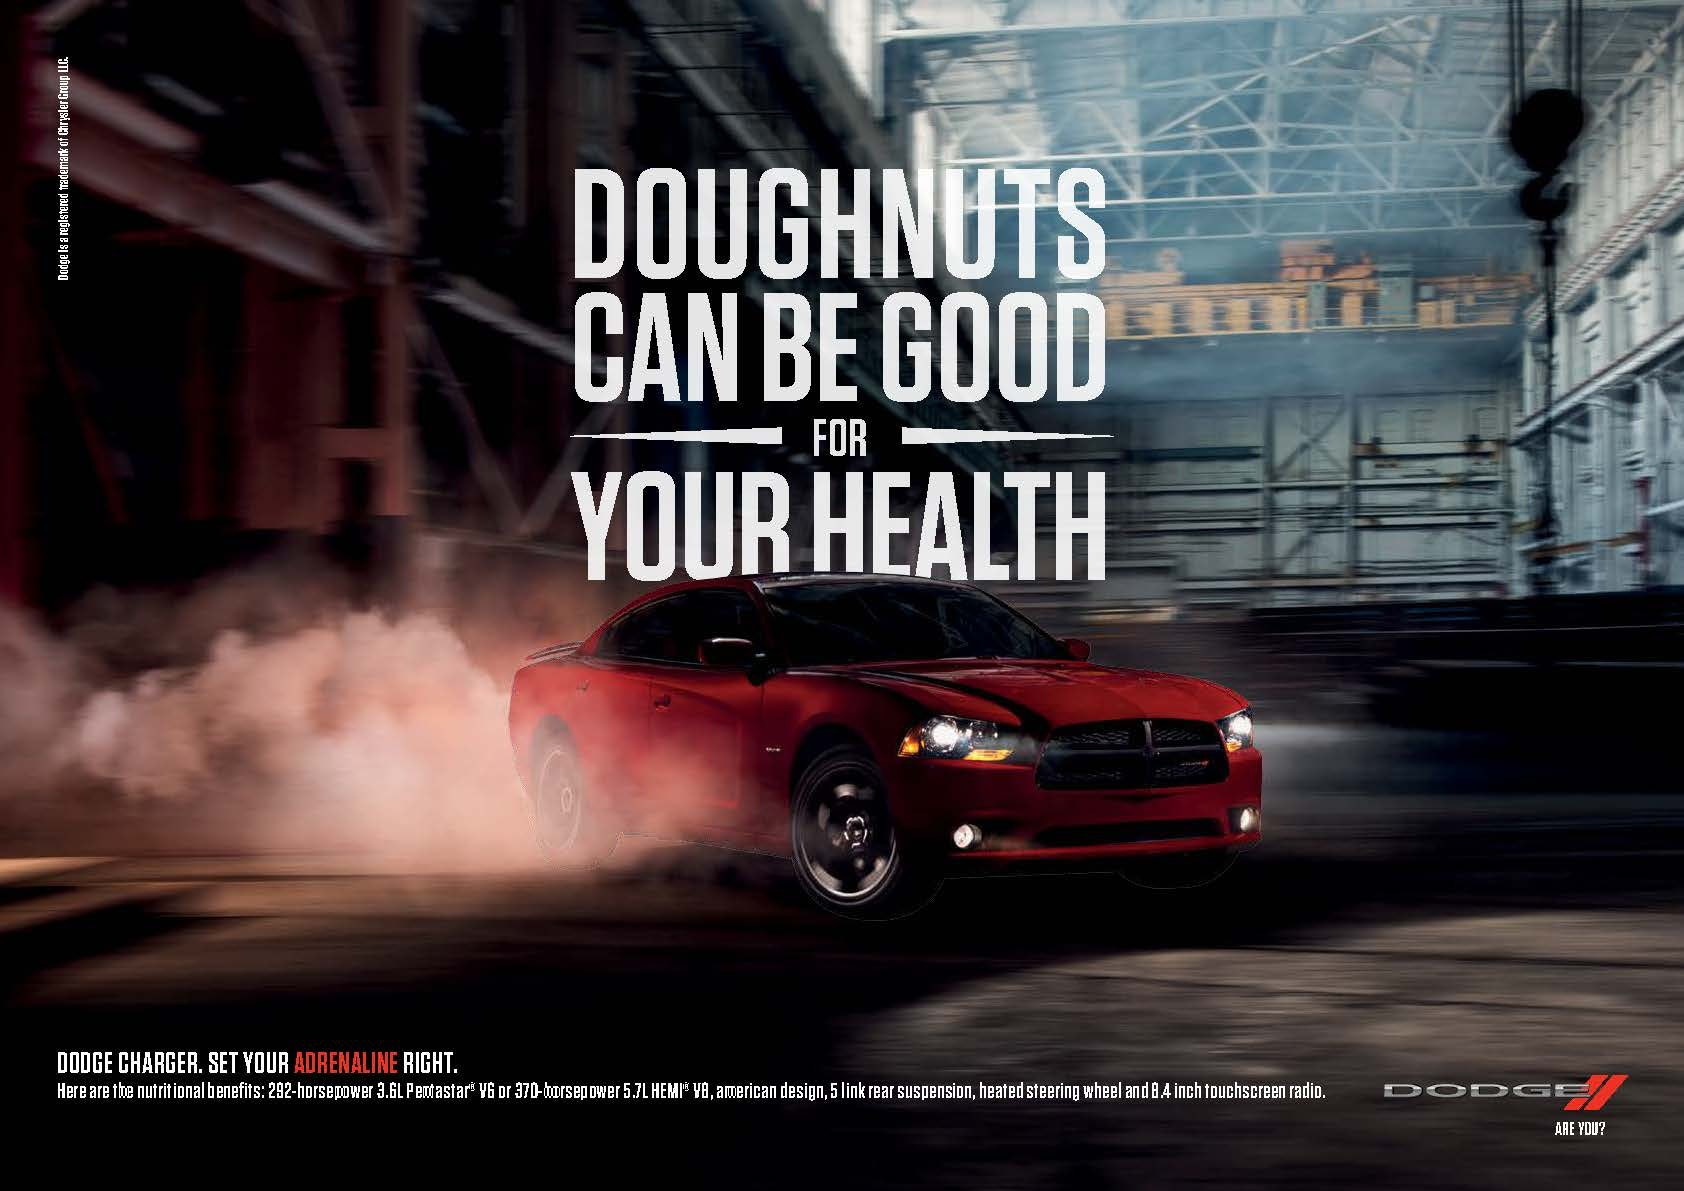 SHIRAKIPHOTO & DESIGN LLC - 0019_low_DODGE_Charger Doughnuts_spread